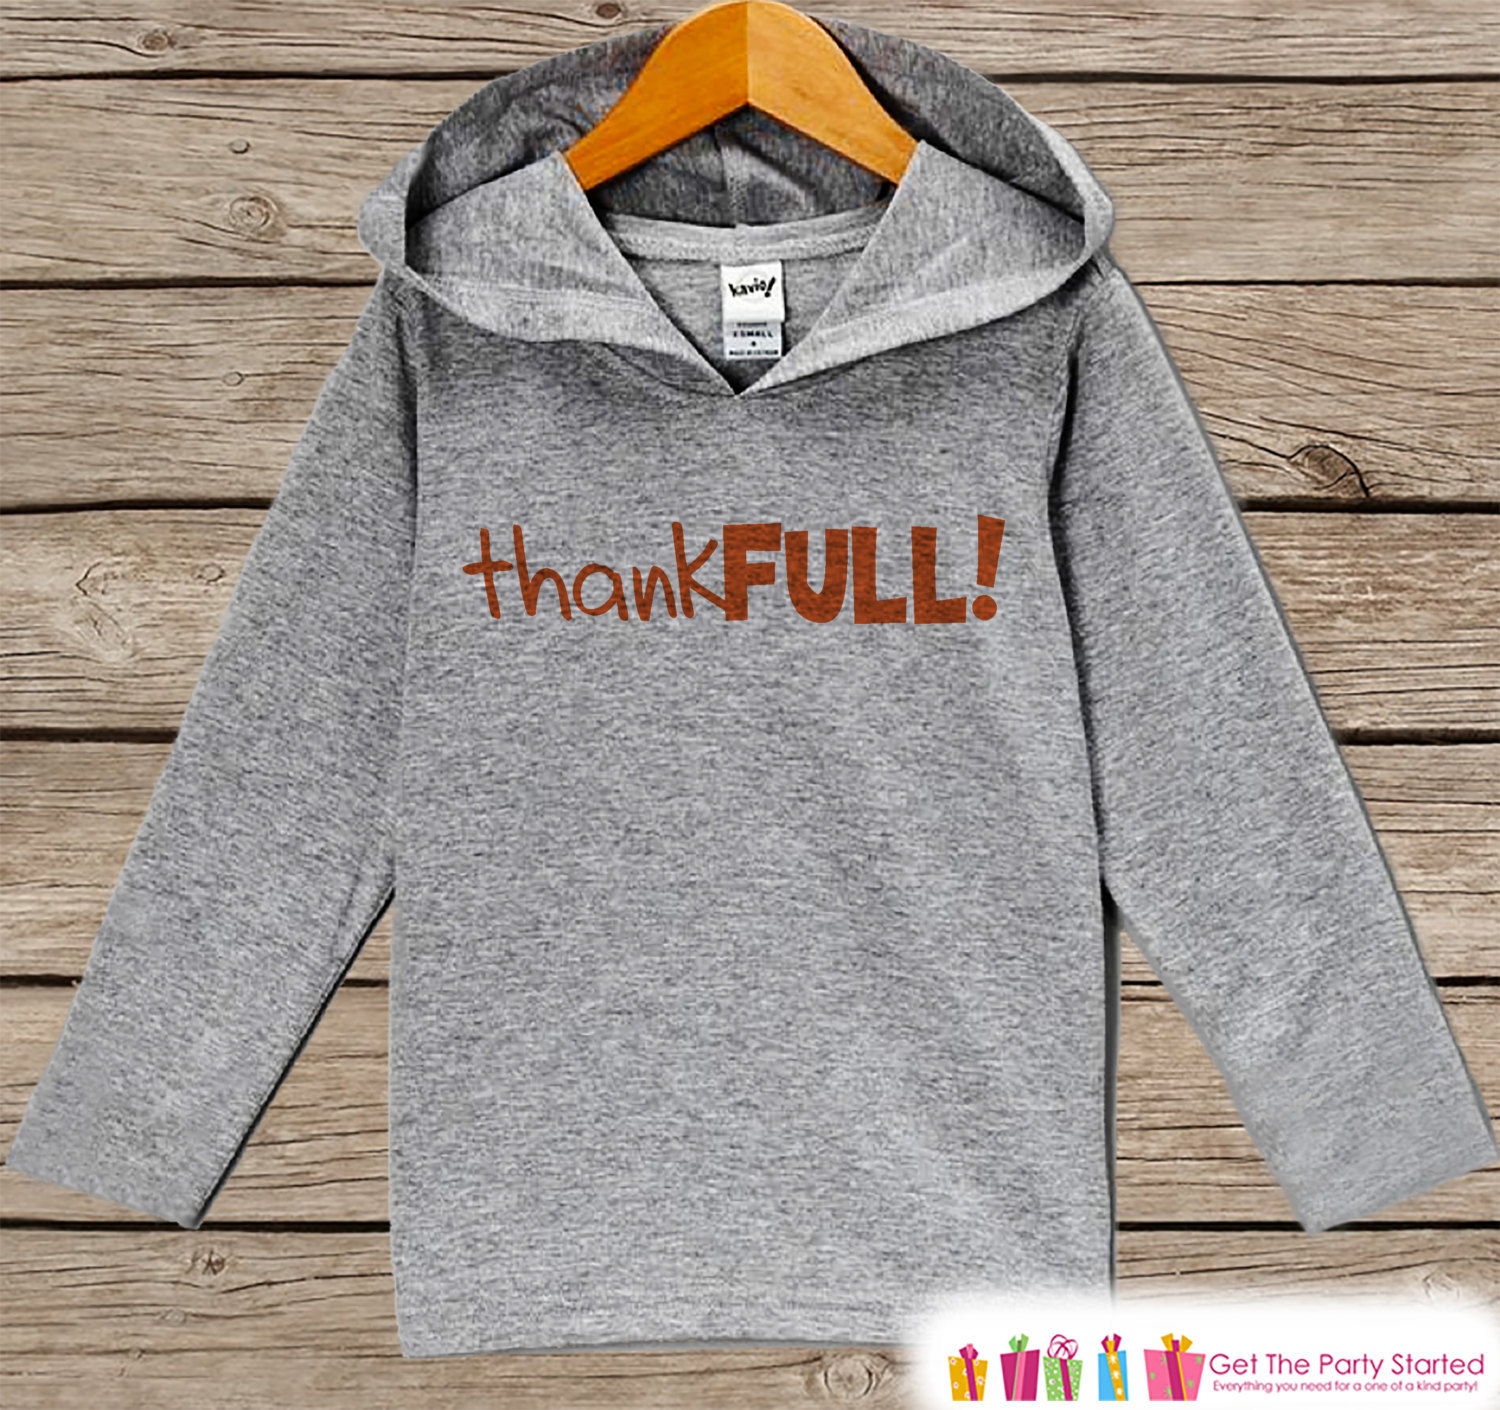 98a2d188 Kids Thanksgiving Shirts - Boy or Girl and 50 similar items. Il  fullxfull.1078416675 d0cw